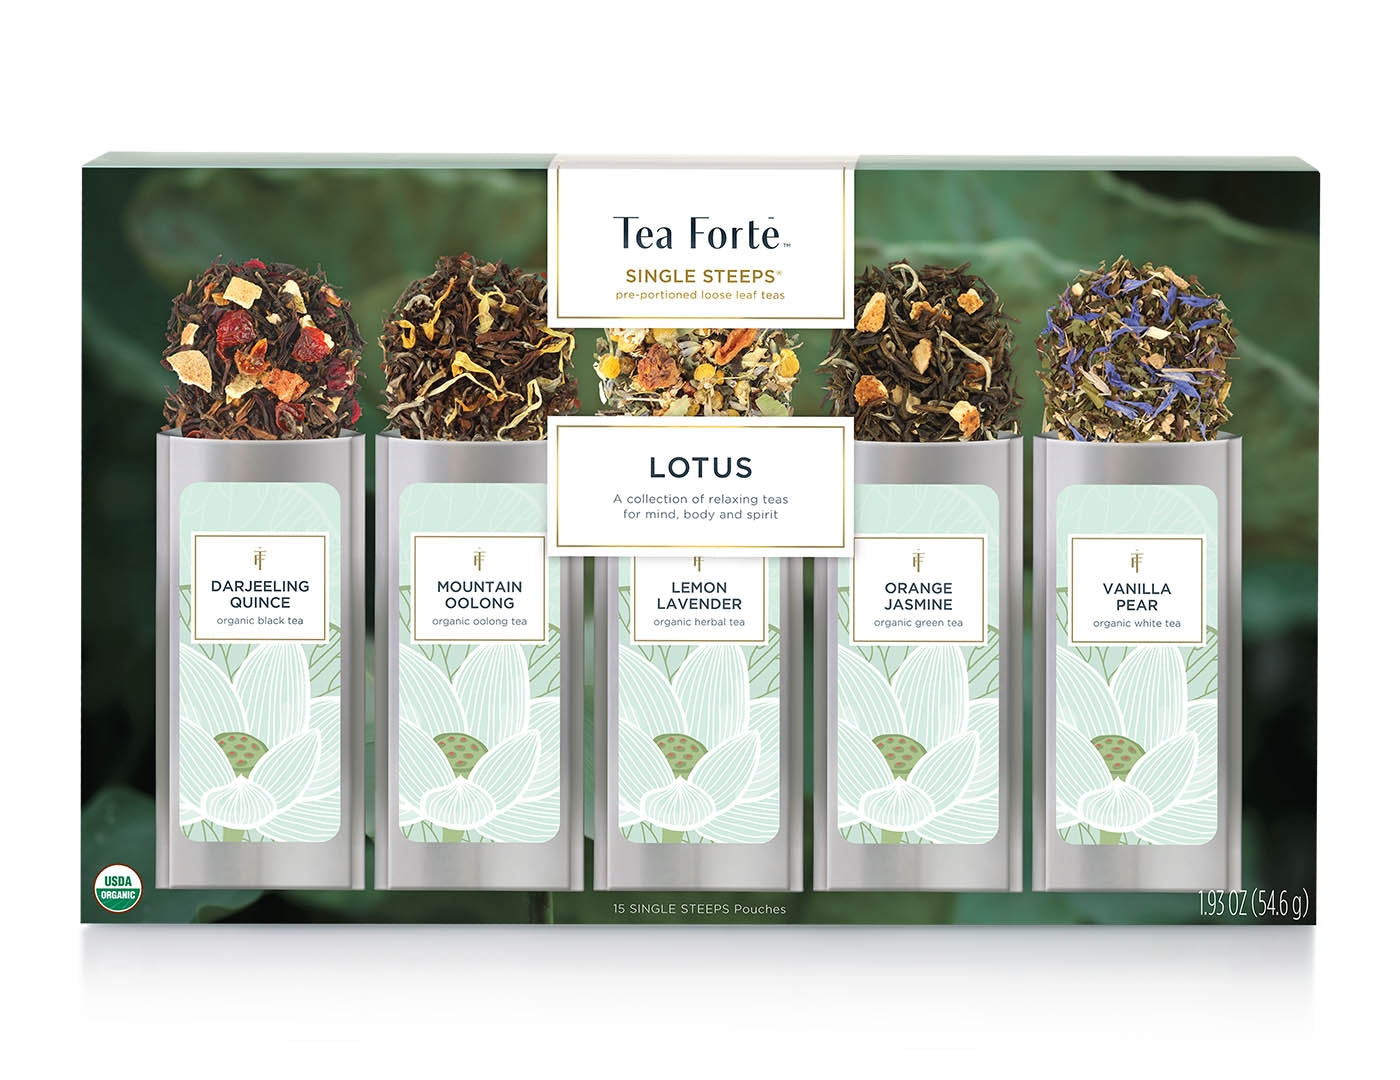 Lotus Single Steeps Loose Tea - Heart of the Home PA